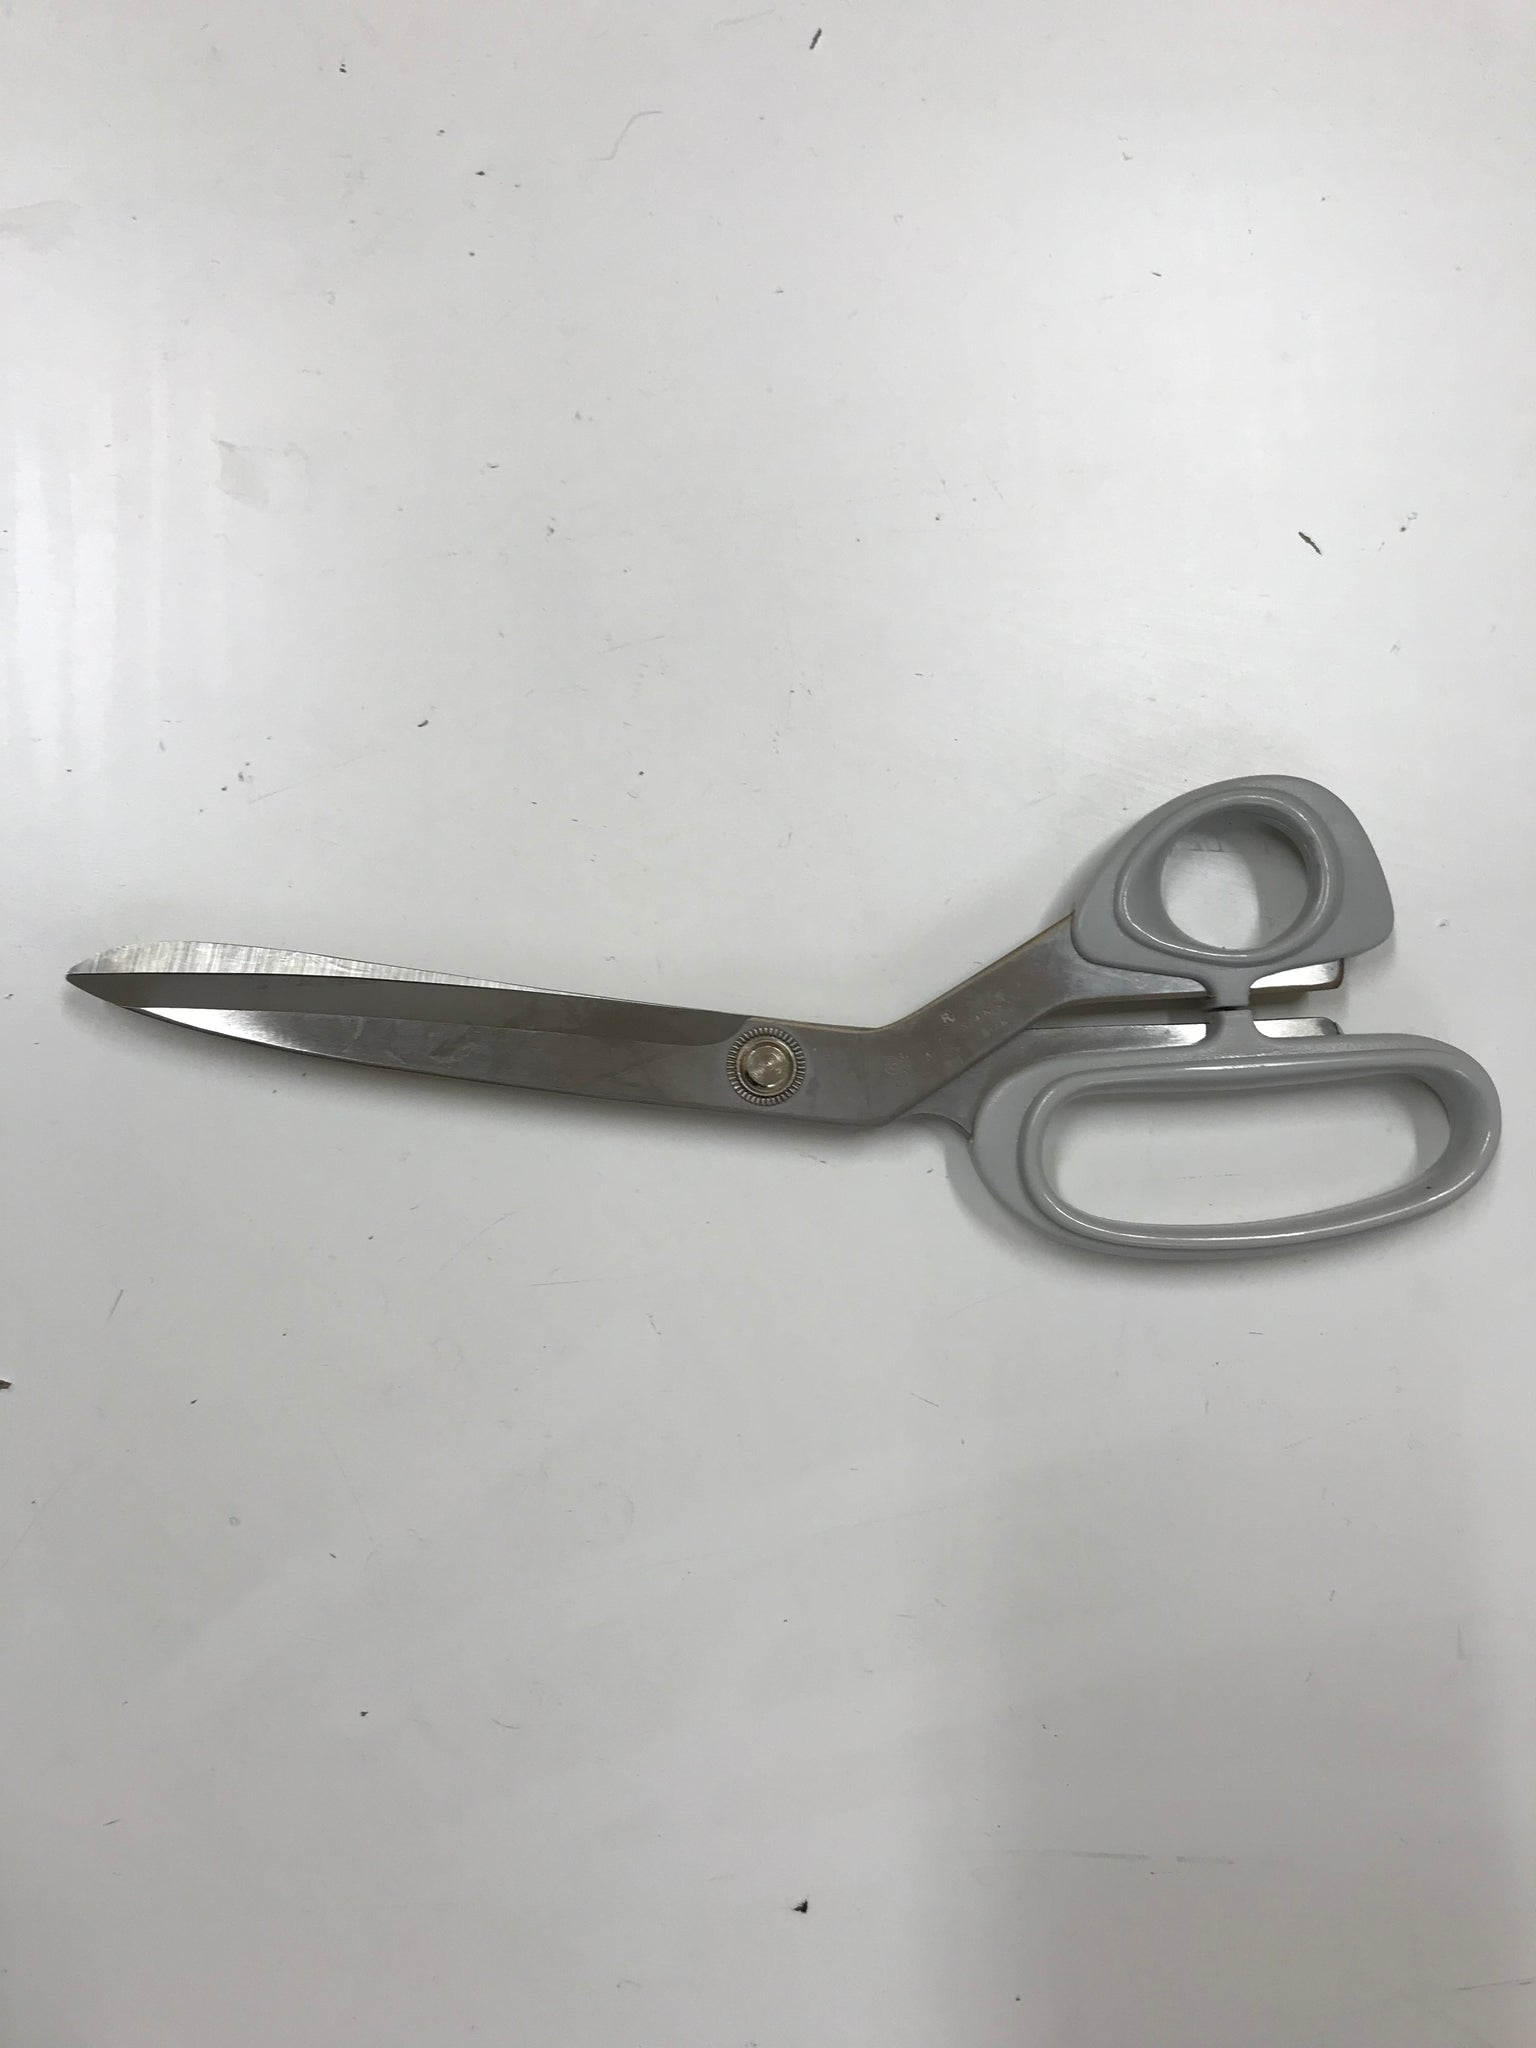 Stag Stainless Steel Scissors